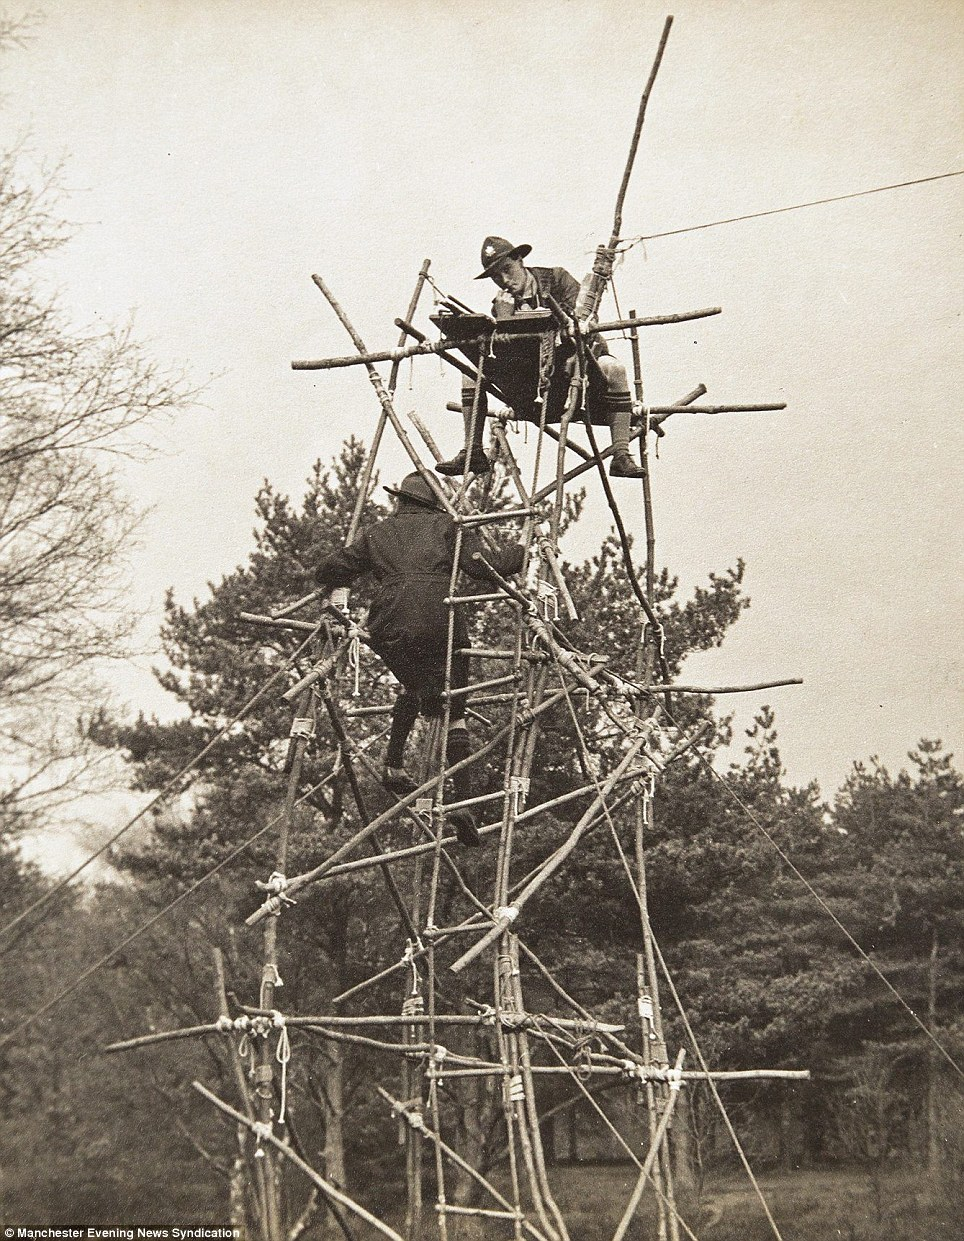 In another shot, a scout perches on top of an alarmingly rickety tower, cobbled together from wooden poles, while a boy clambers his way up